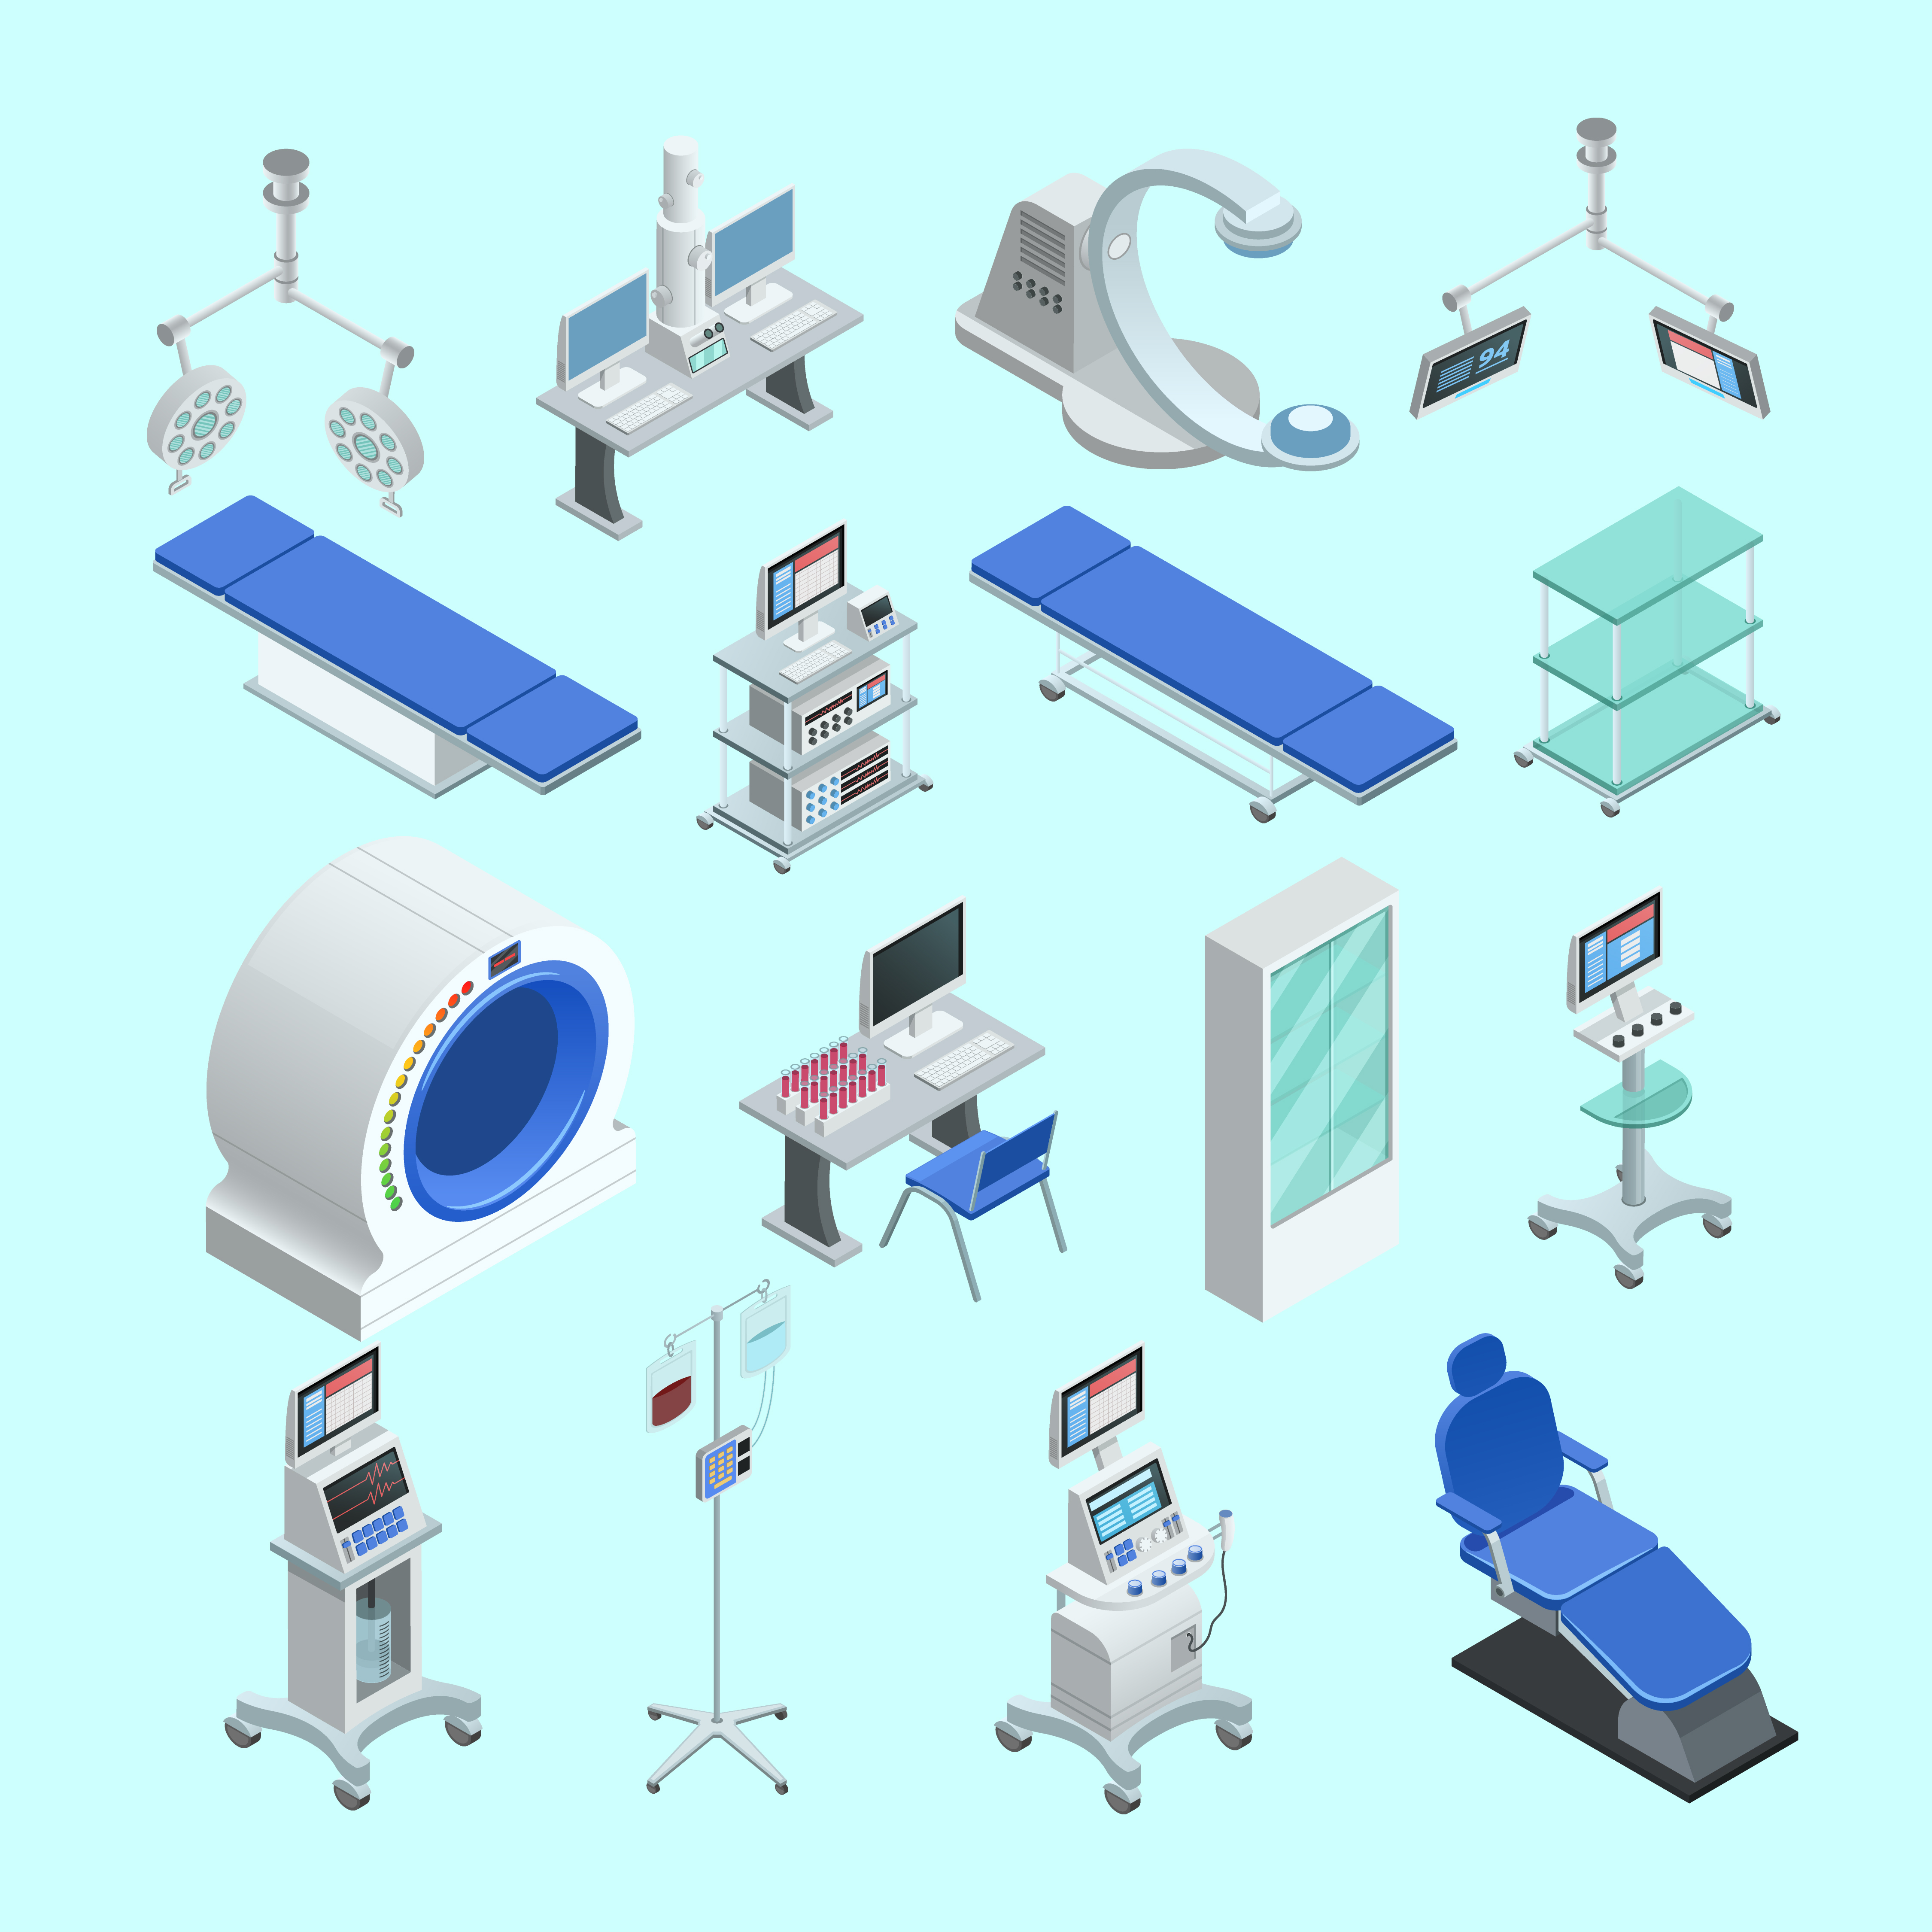 Medical Equipment Isometric Icons Set - Download Free ...